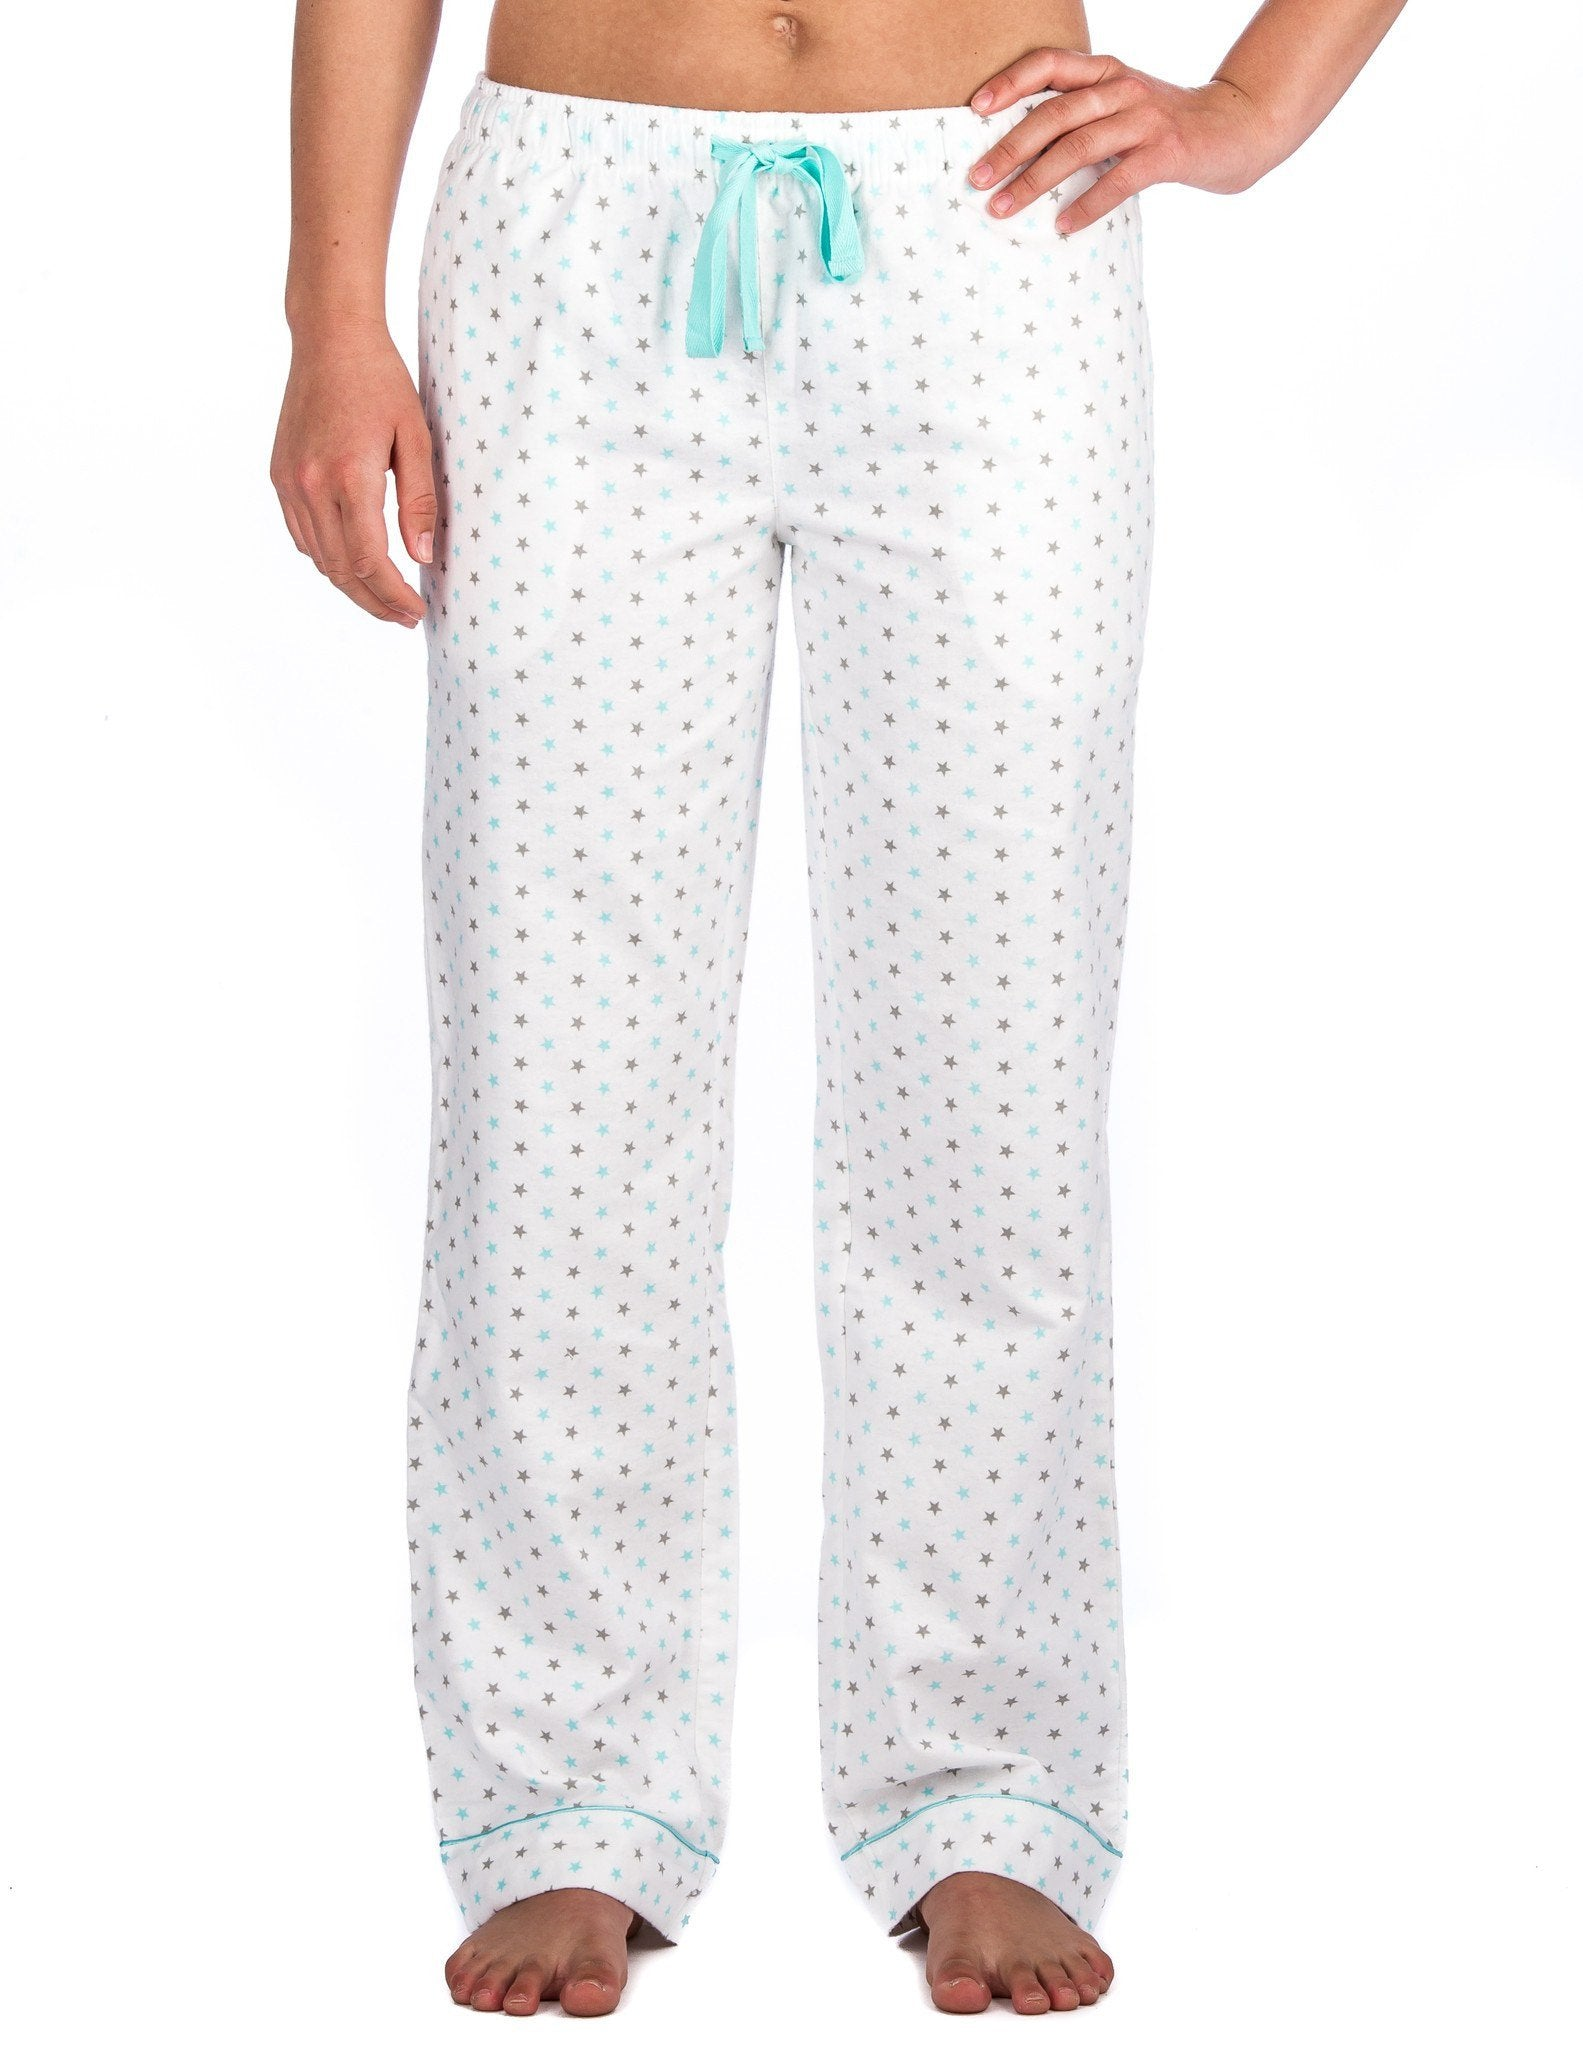 Relaxed Fit Womens 100% Cotton Flannel Lounge Pants - Stars White